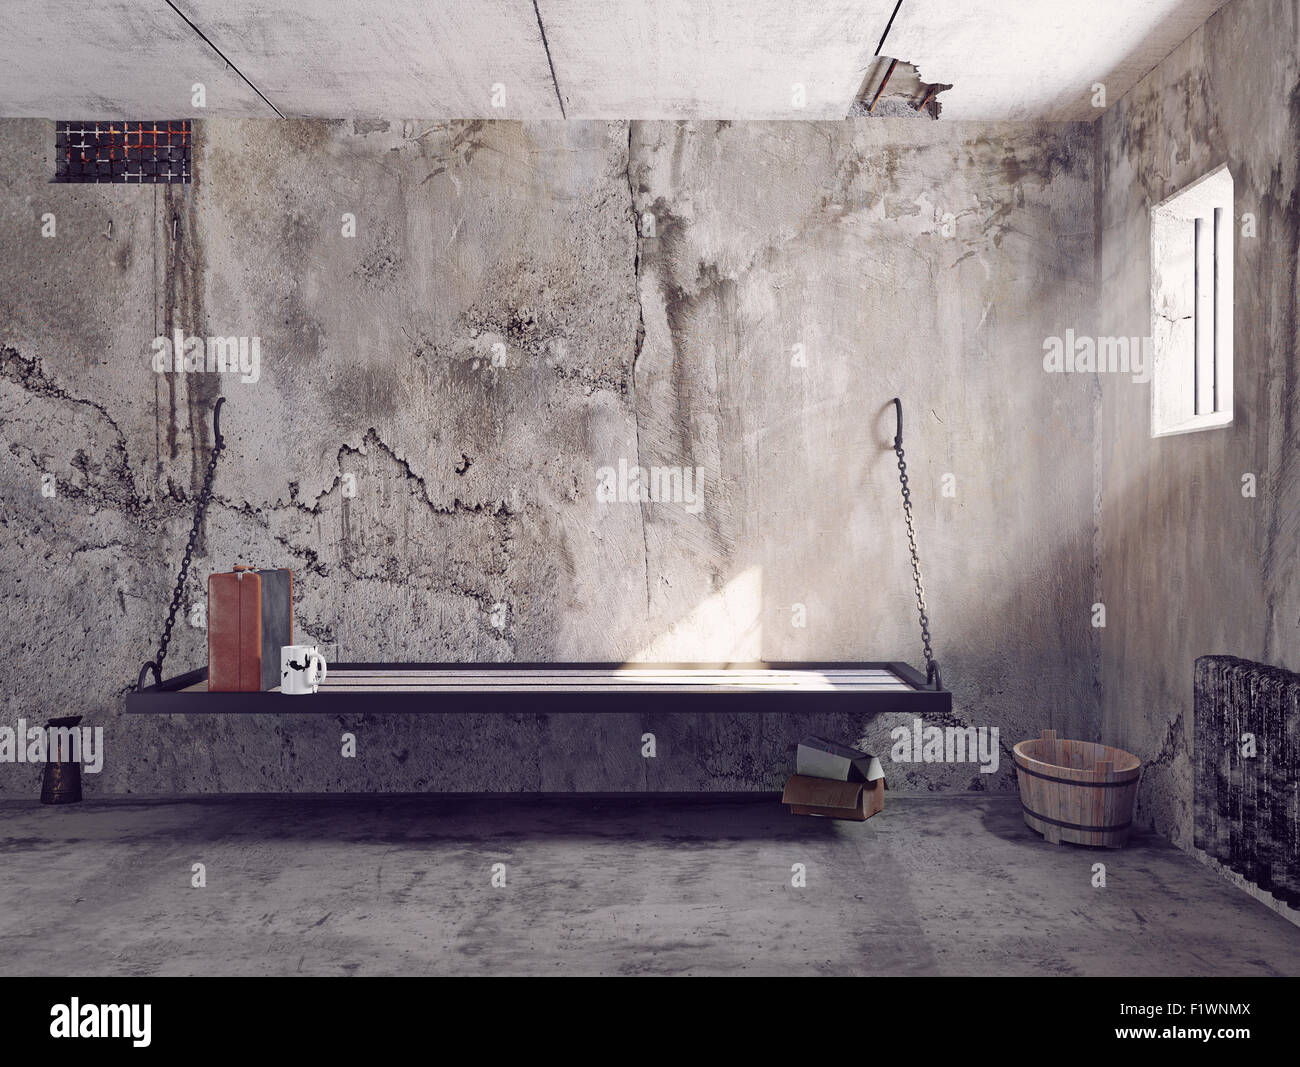 dirty jail cell interior. 3d concept - Stock Image